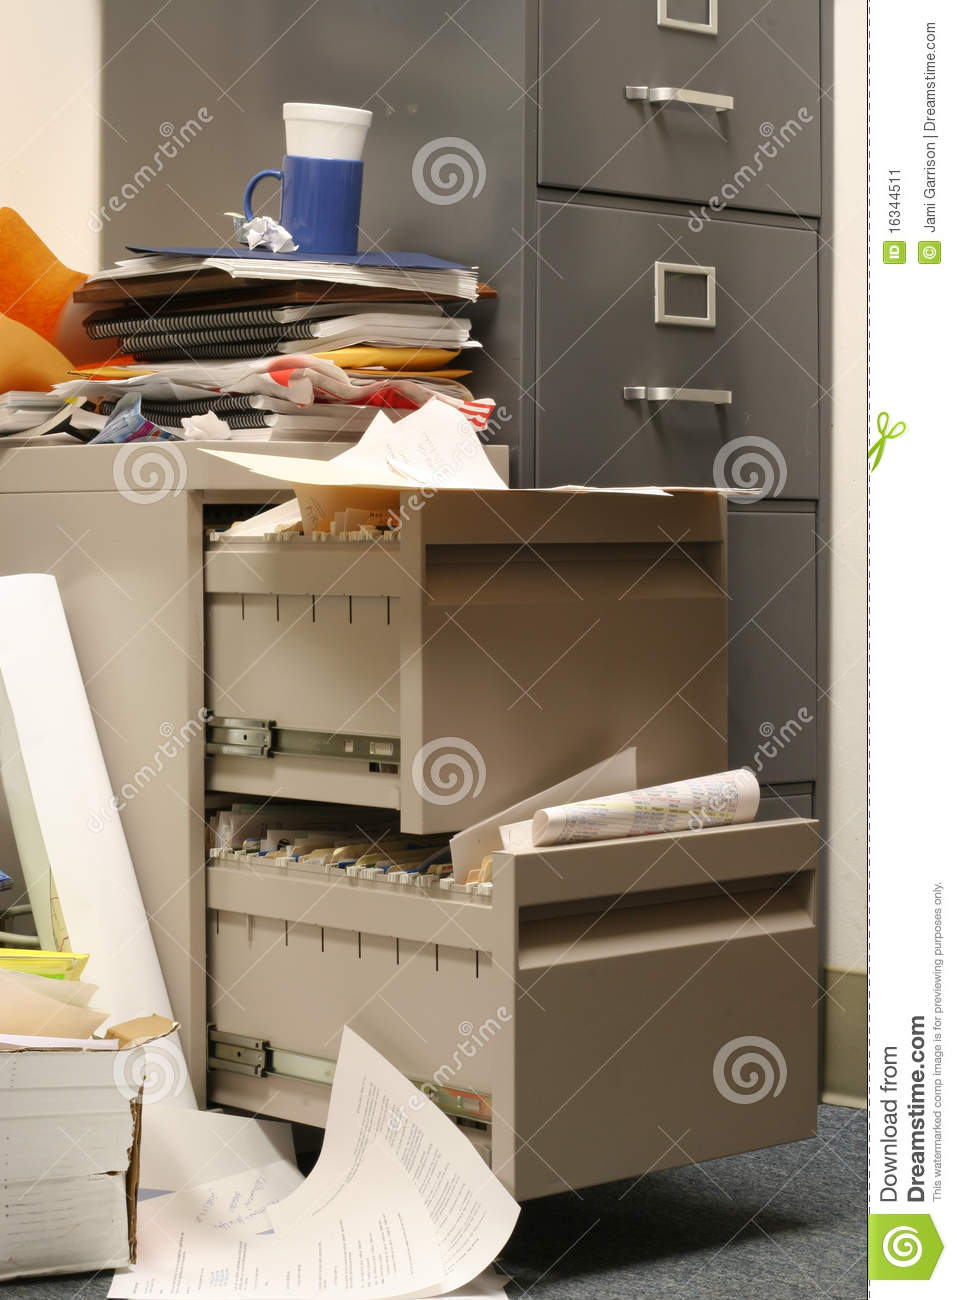 Messy Filing Cabinet Stock Image - Image: 16344511